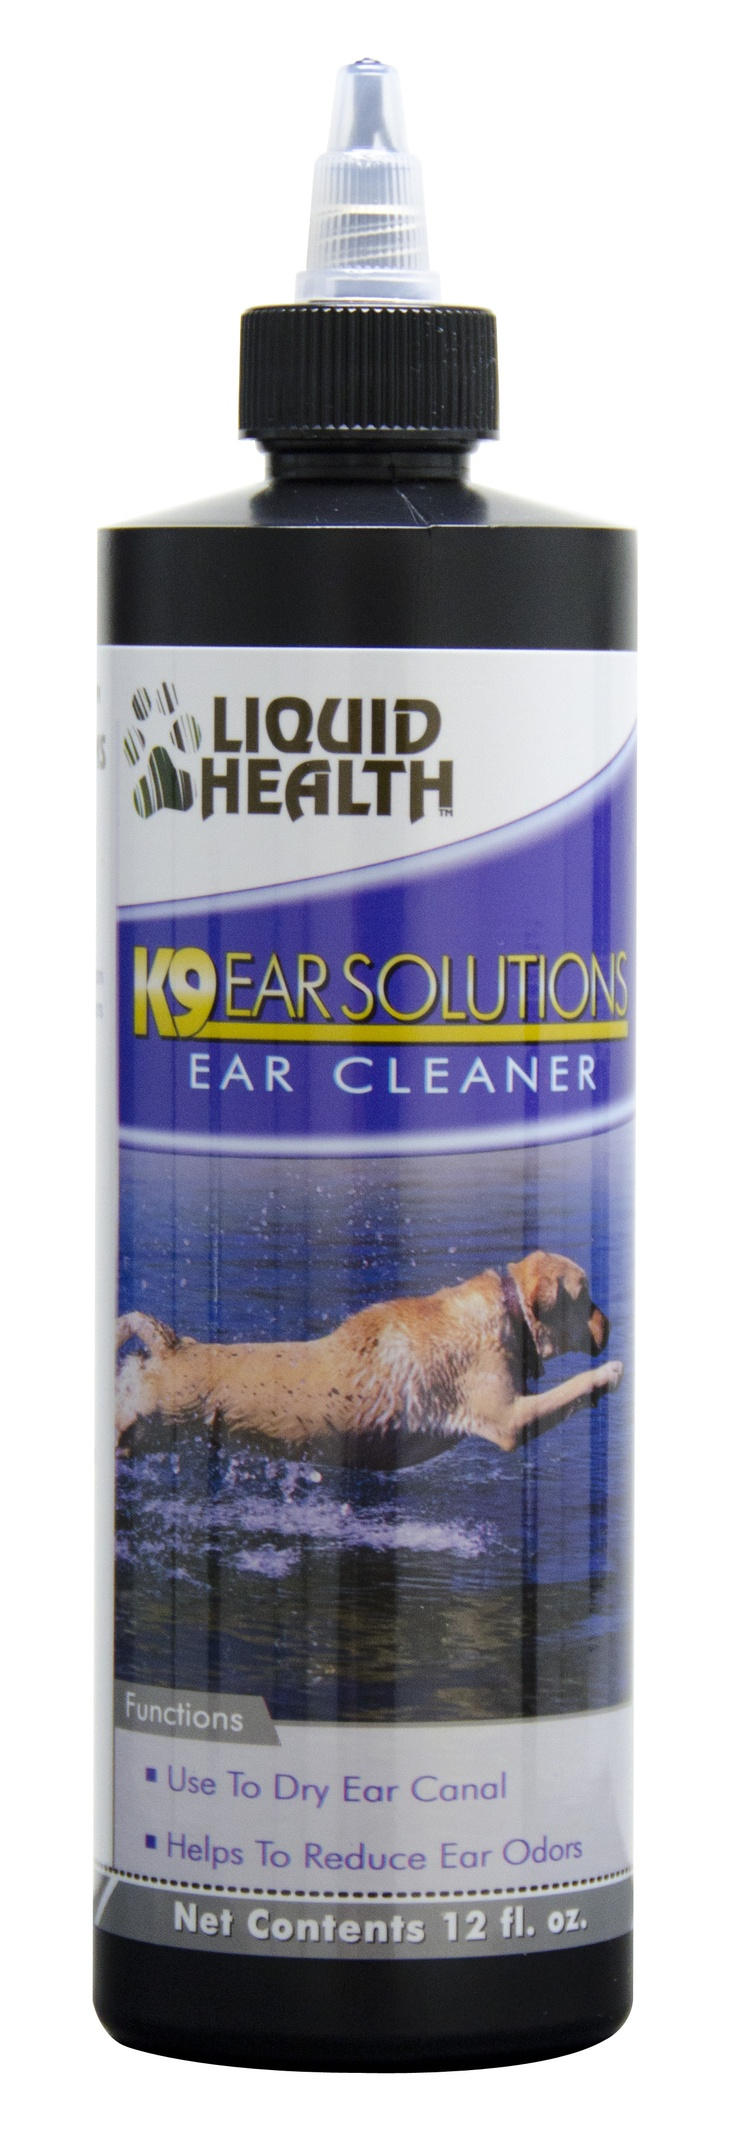 Liquid Health's Ear Solution washes & dries. It also reduces that smelly odor in the ear.